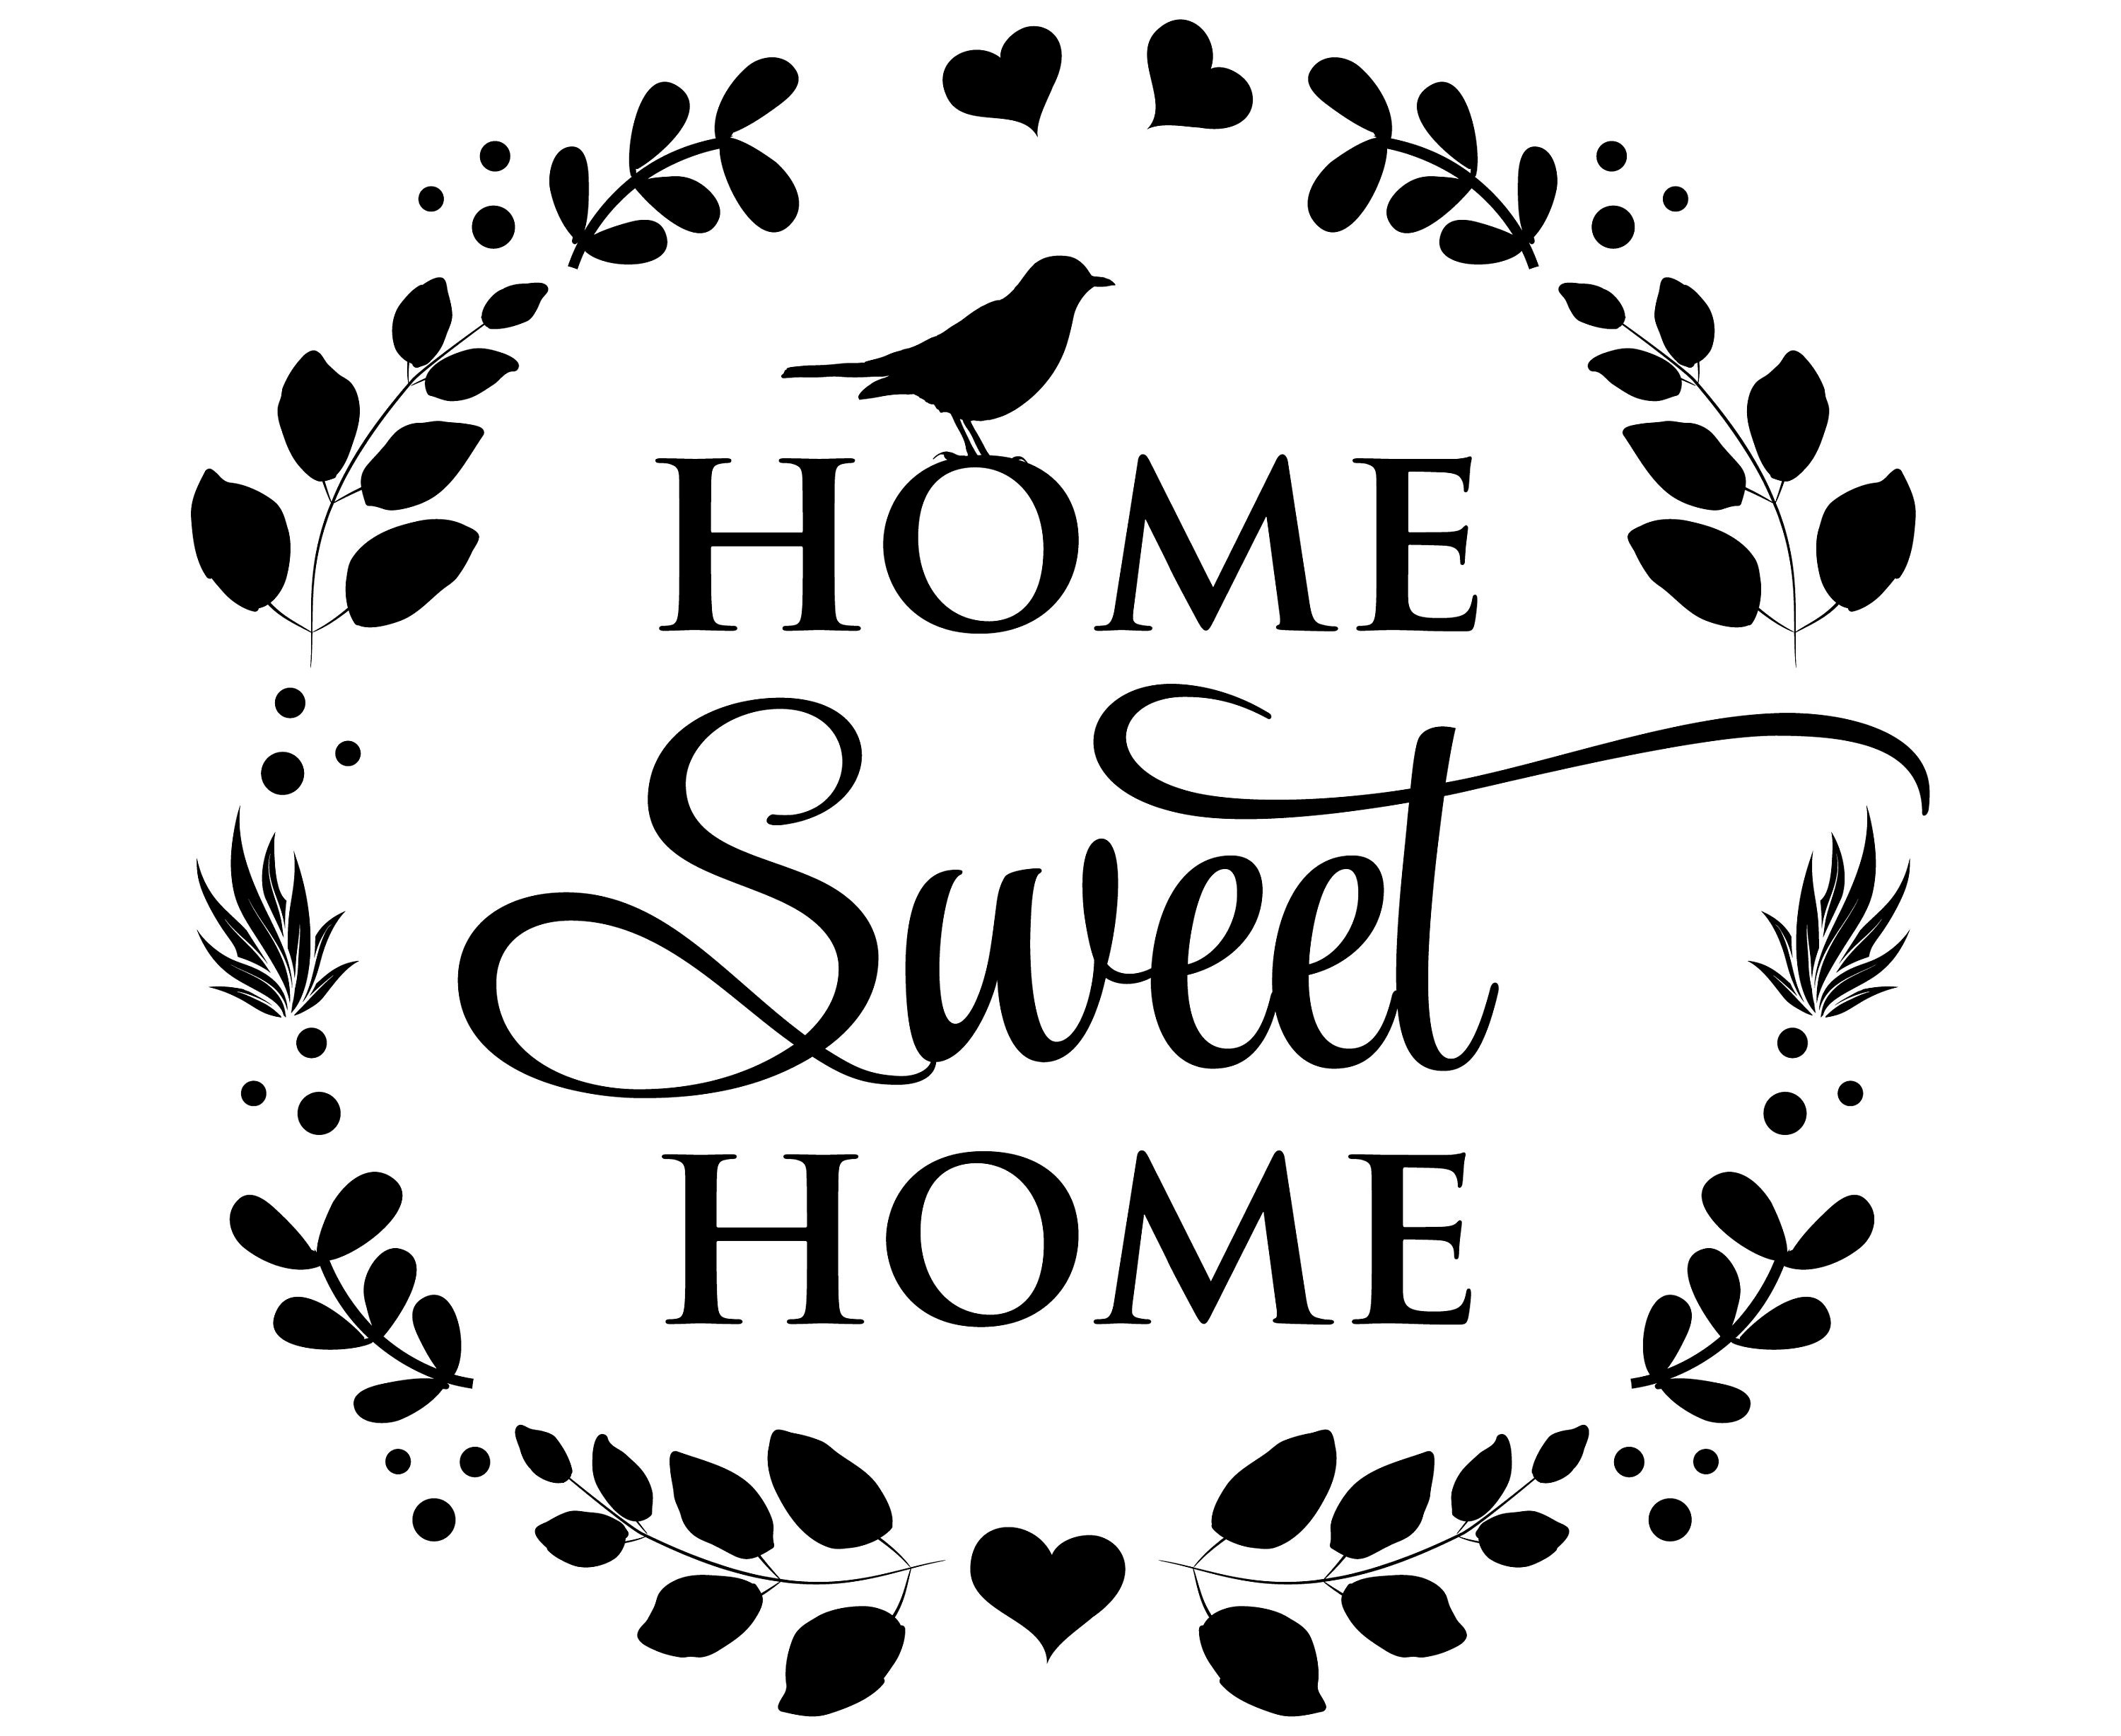 Home sweet home SVG Home SVG quotes Home quote SVGSvg | Etsy